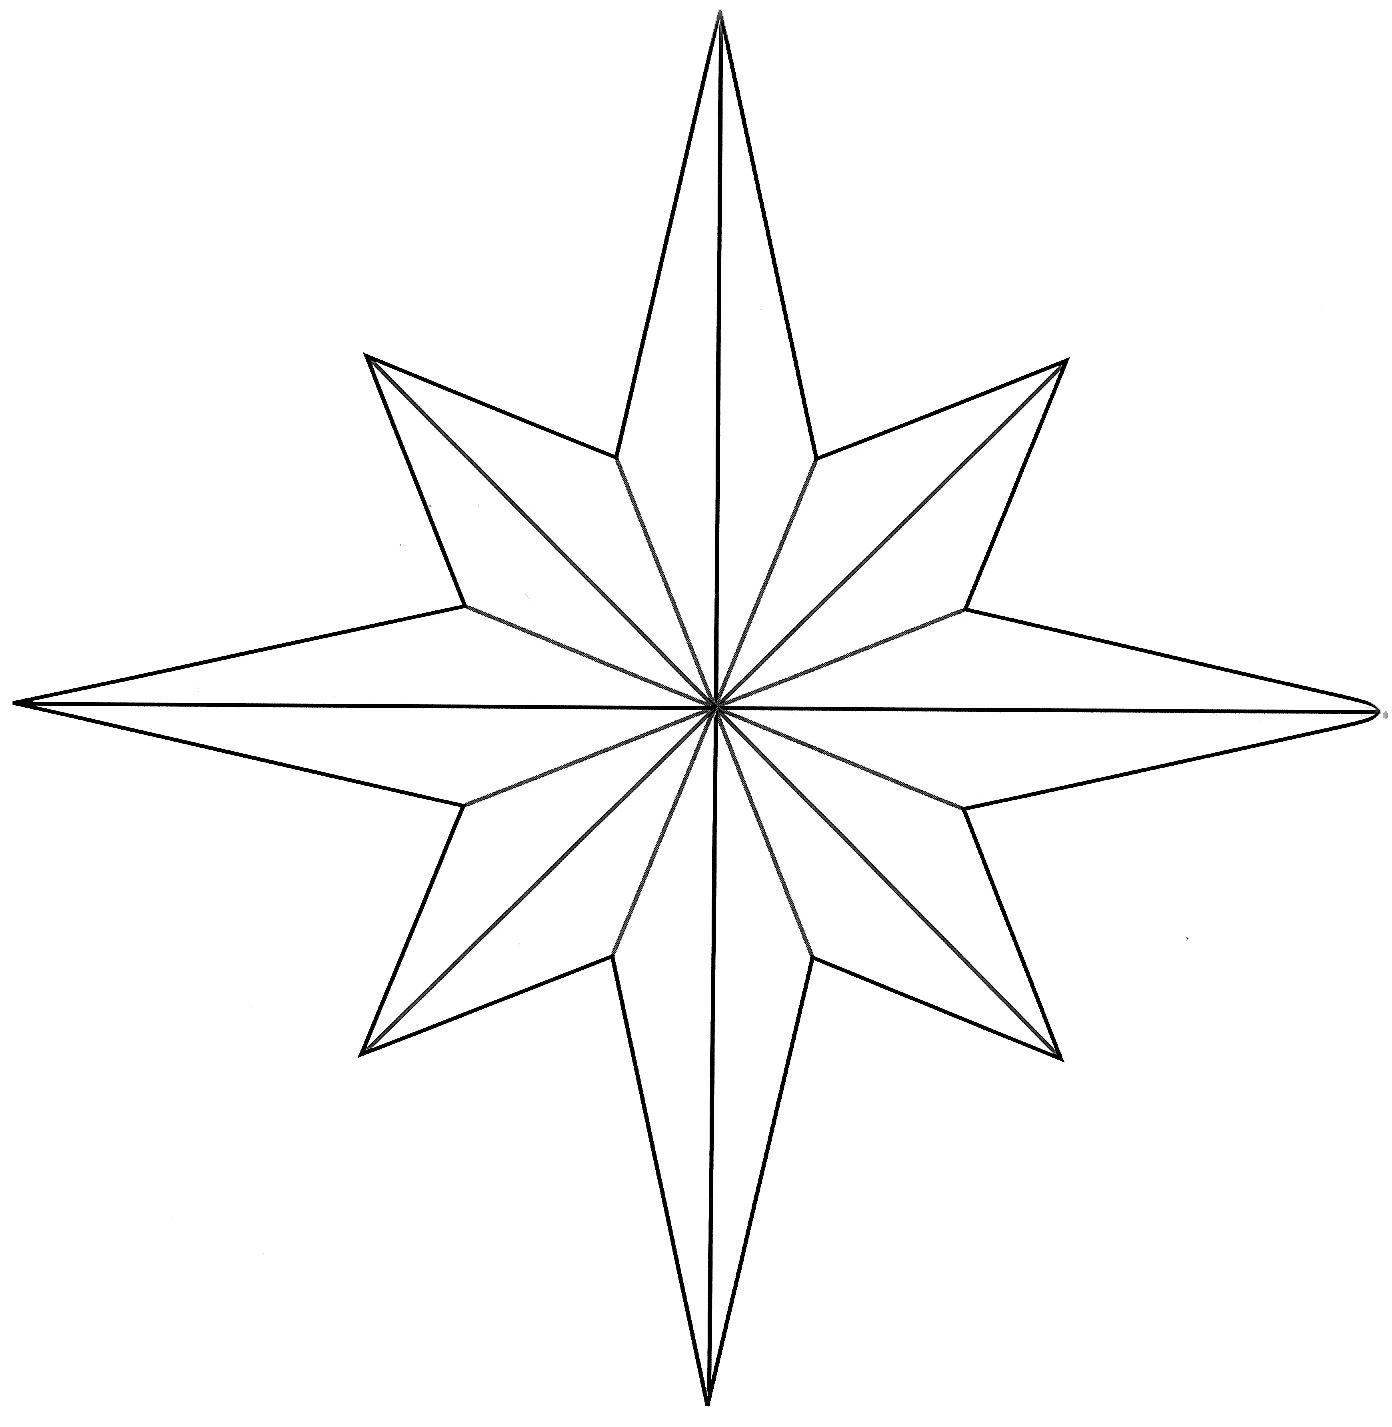 8 point star cluster clipart clipart images gallery for free.